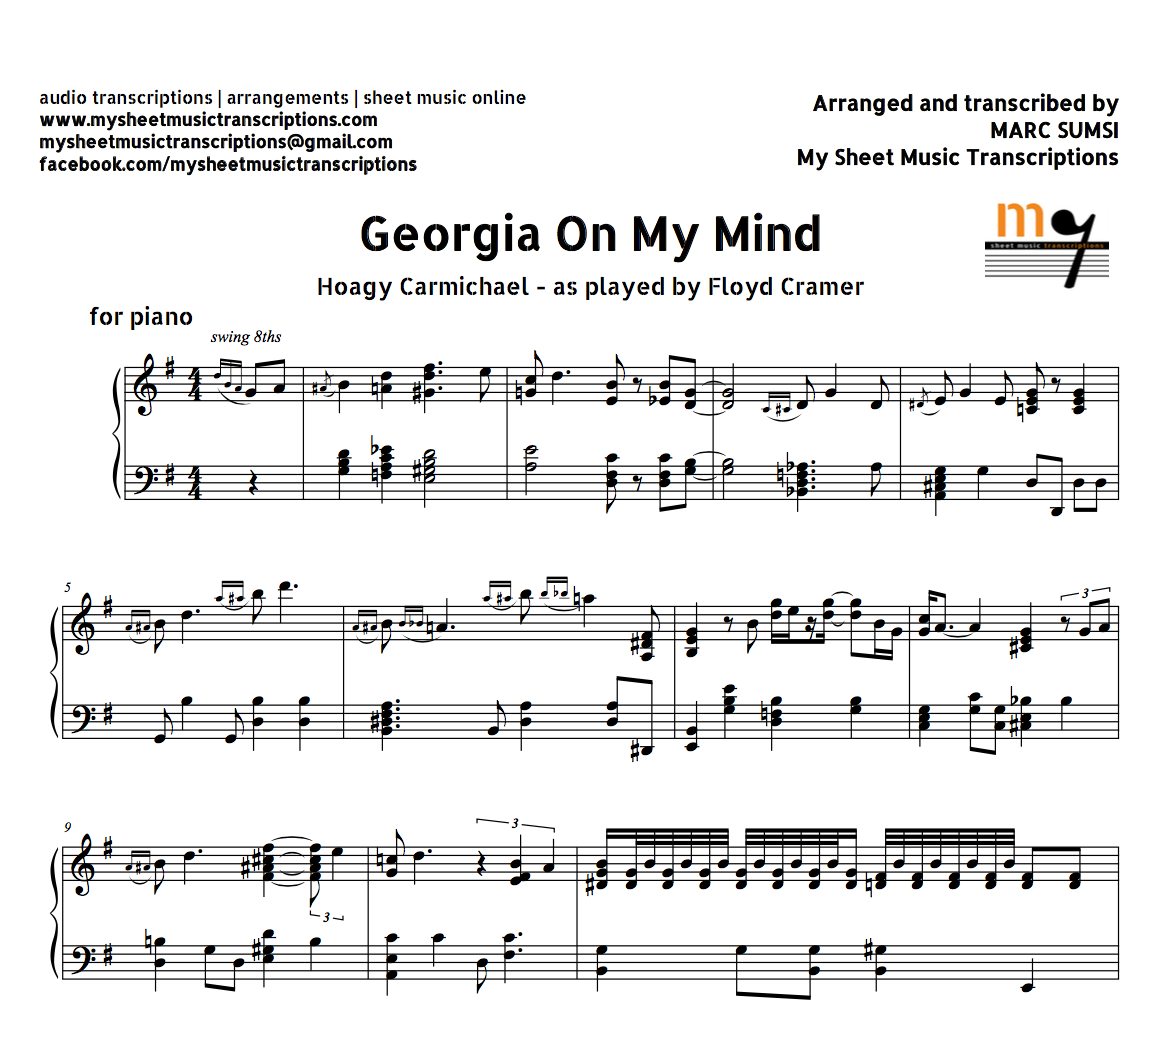 Georgia on my mind hoagy carmichael as played by floyd cramer georgia on my mind hoagy carmichael as played by floyd cramer sheet music pdf hexwebz Image collections